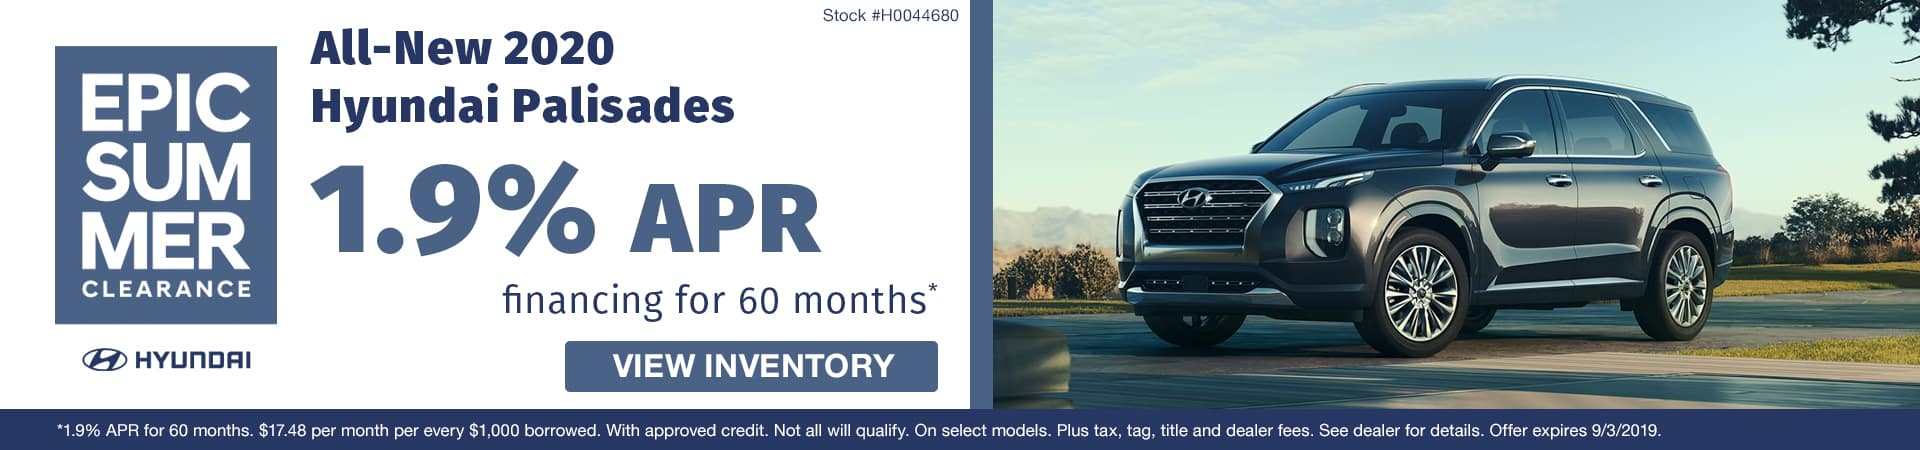 Get 1.9% APR financing on an all-new 2020 Hyundai Palisade in Murfreesboro TN